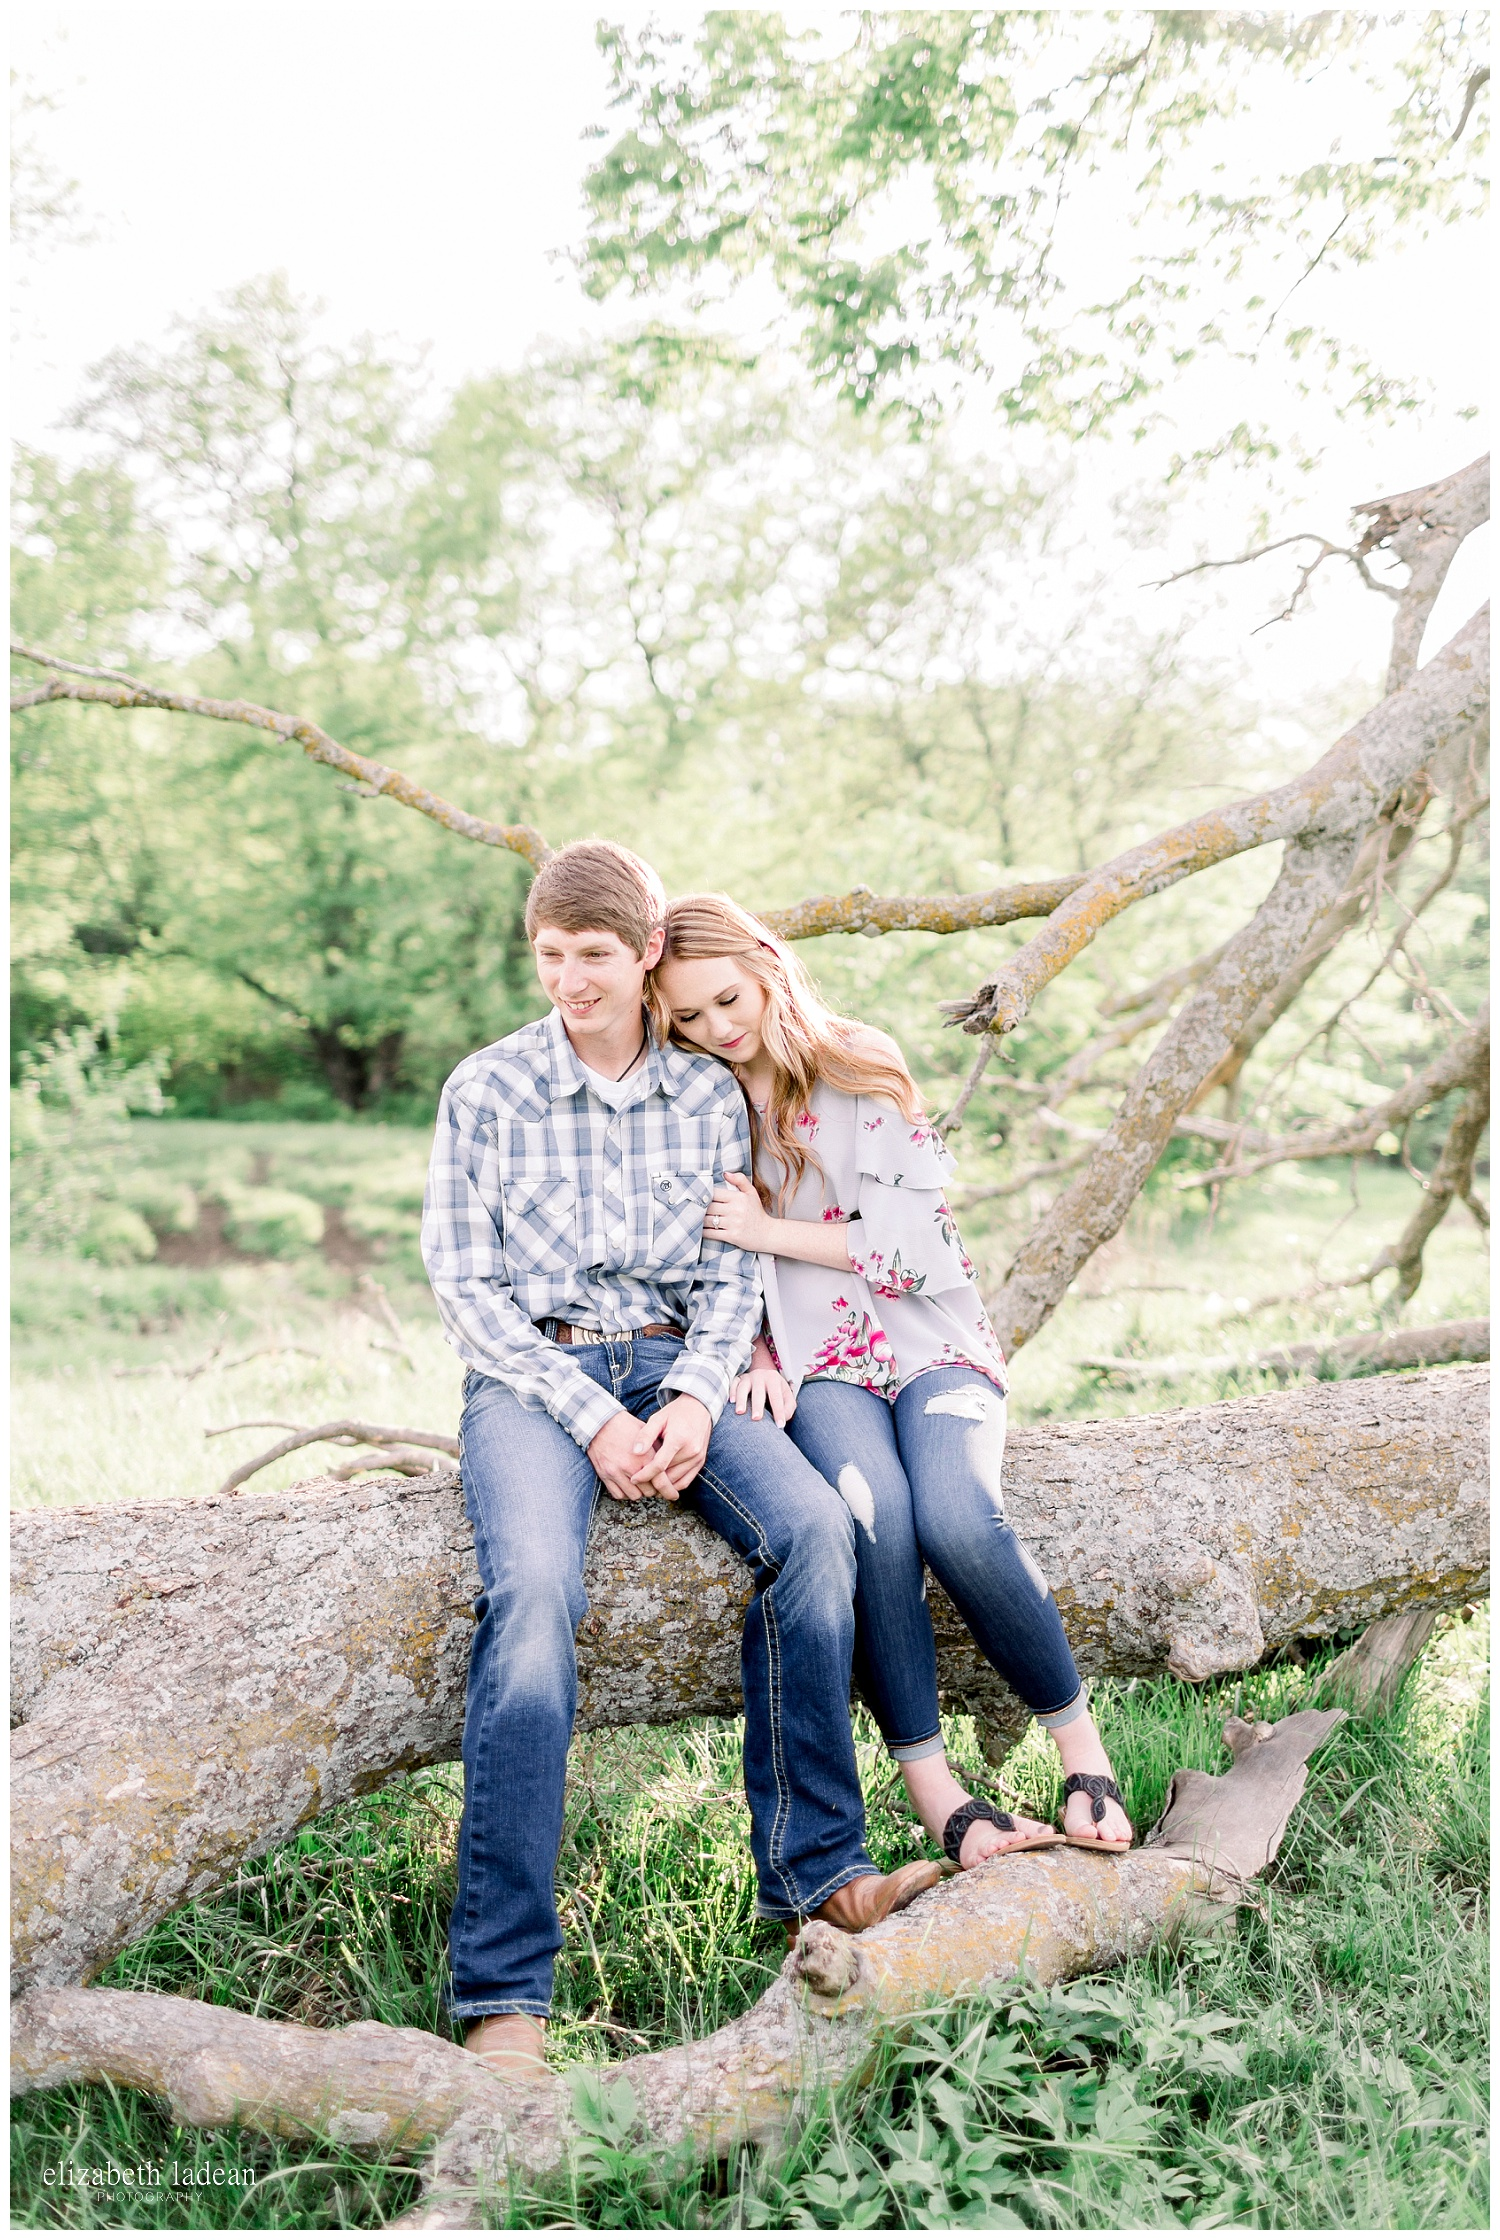 Candid engagement session in Kansas City